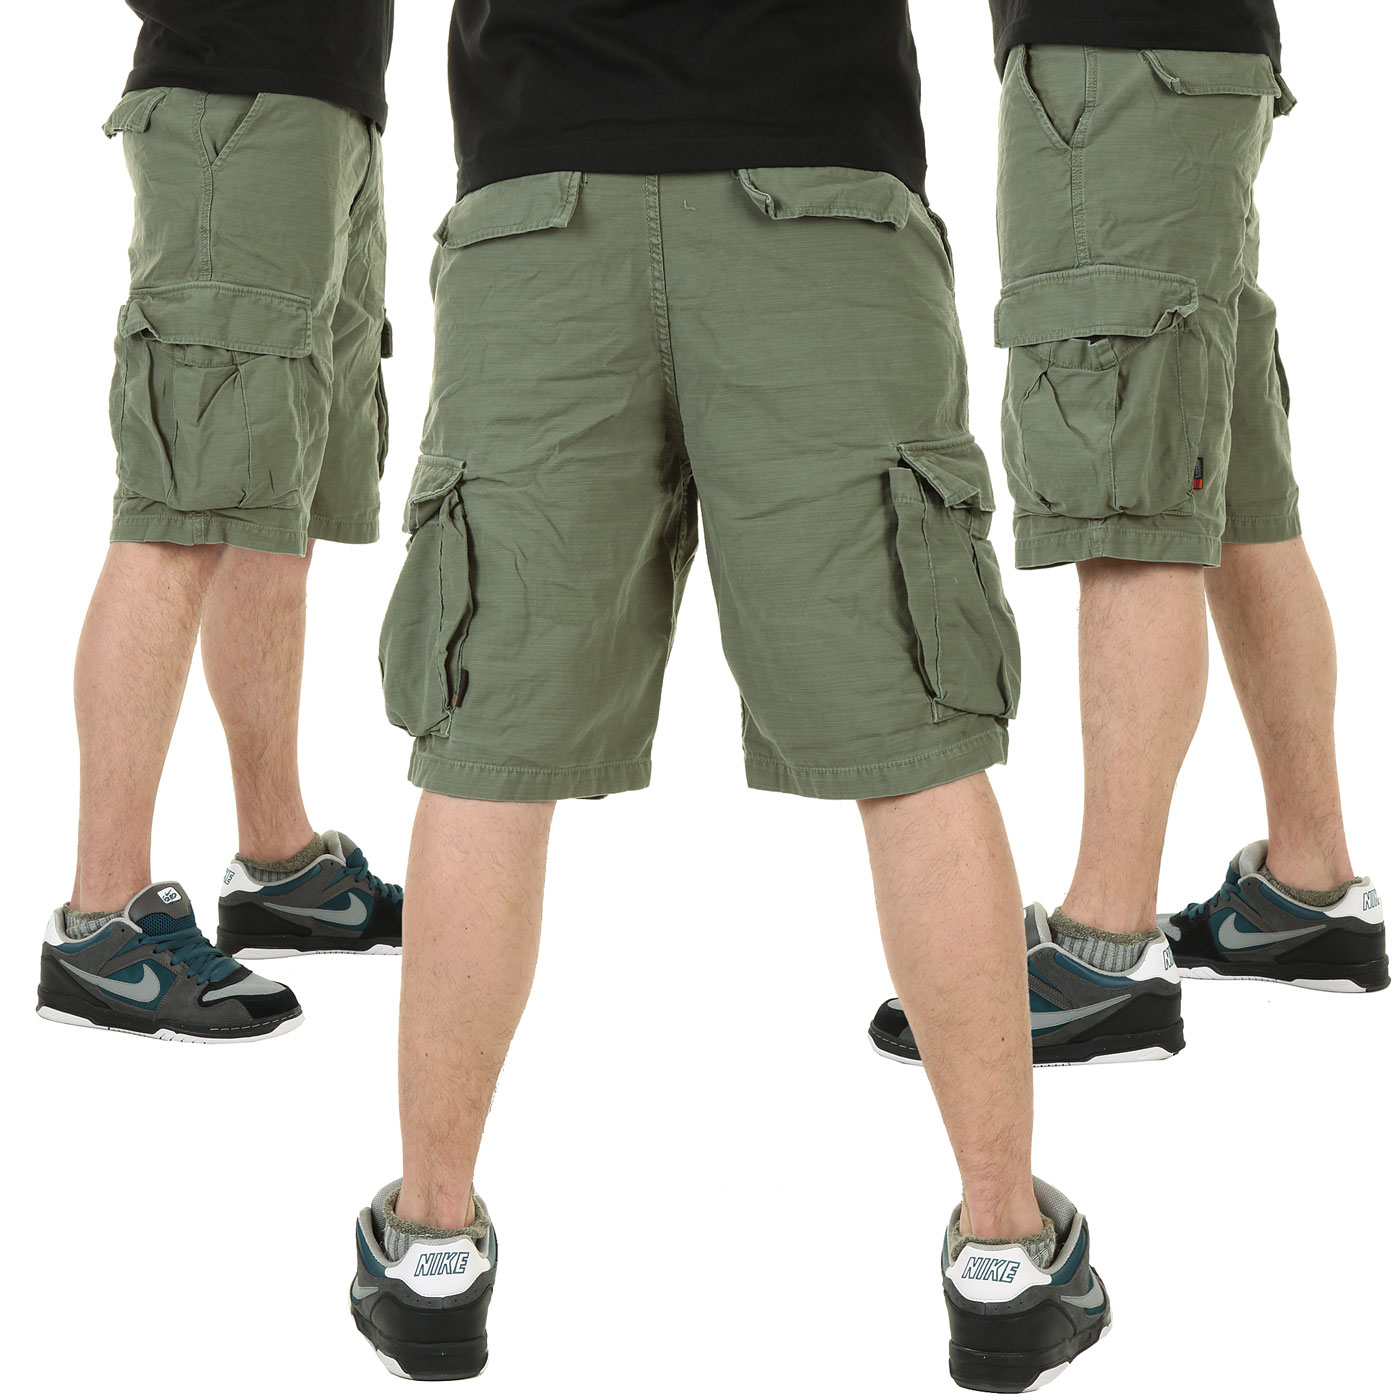 ab3d657ba0 Cargo Shorts With Vans